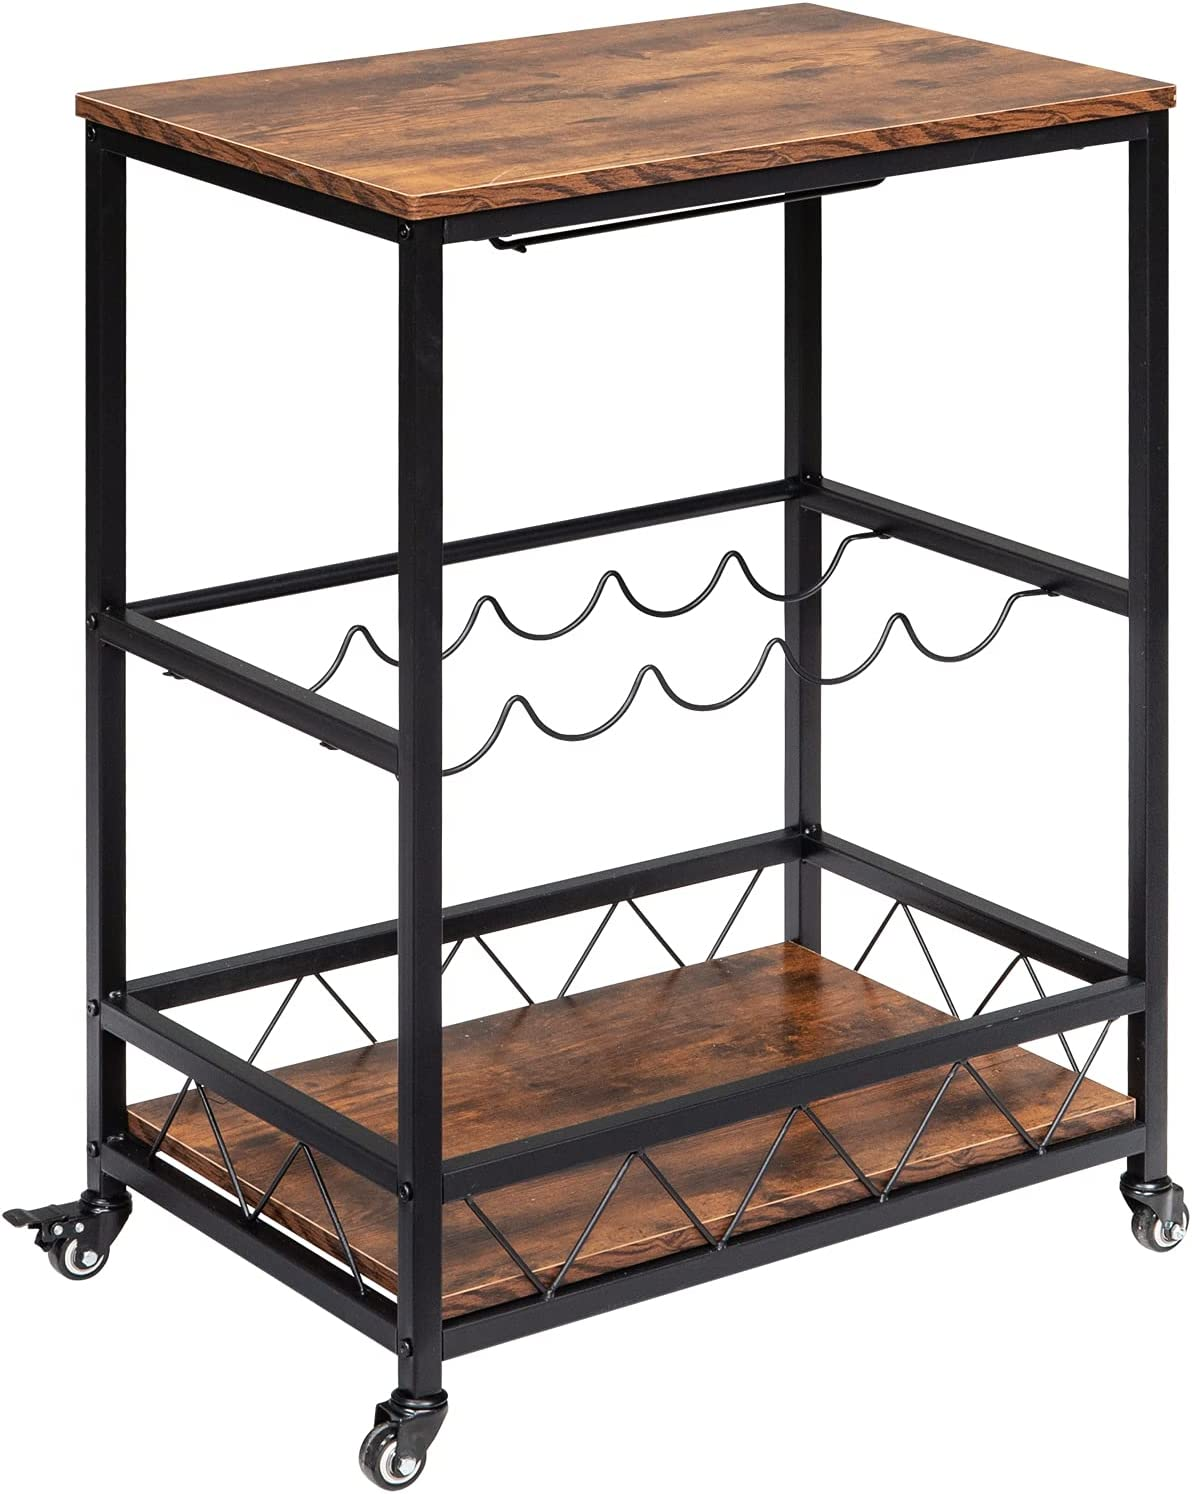 Bar Cart Serving with Wheels Wine Stemware and Rack Max Max 65% OFF 43% OFF Glass